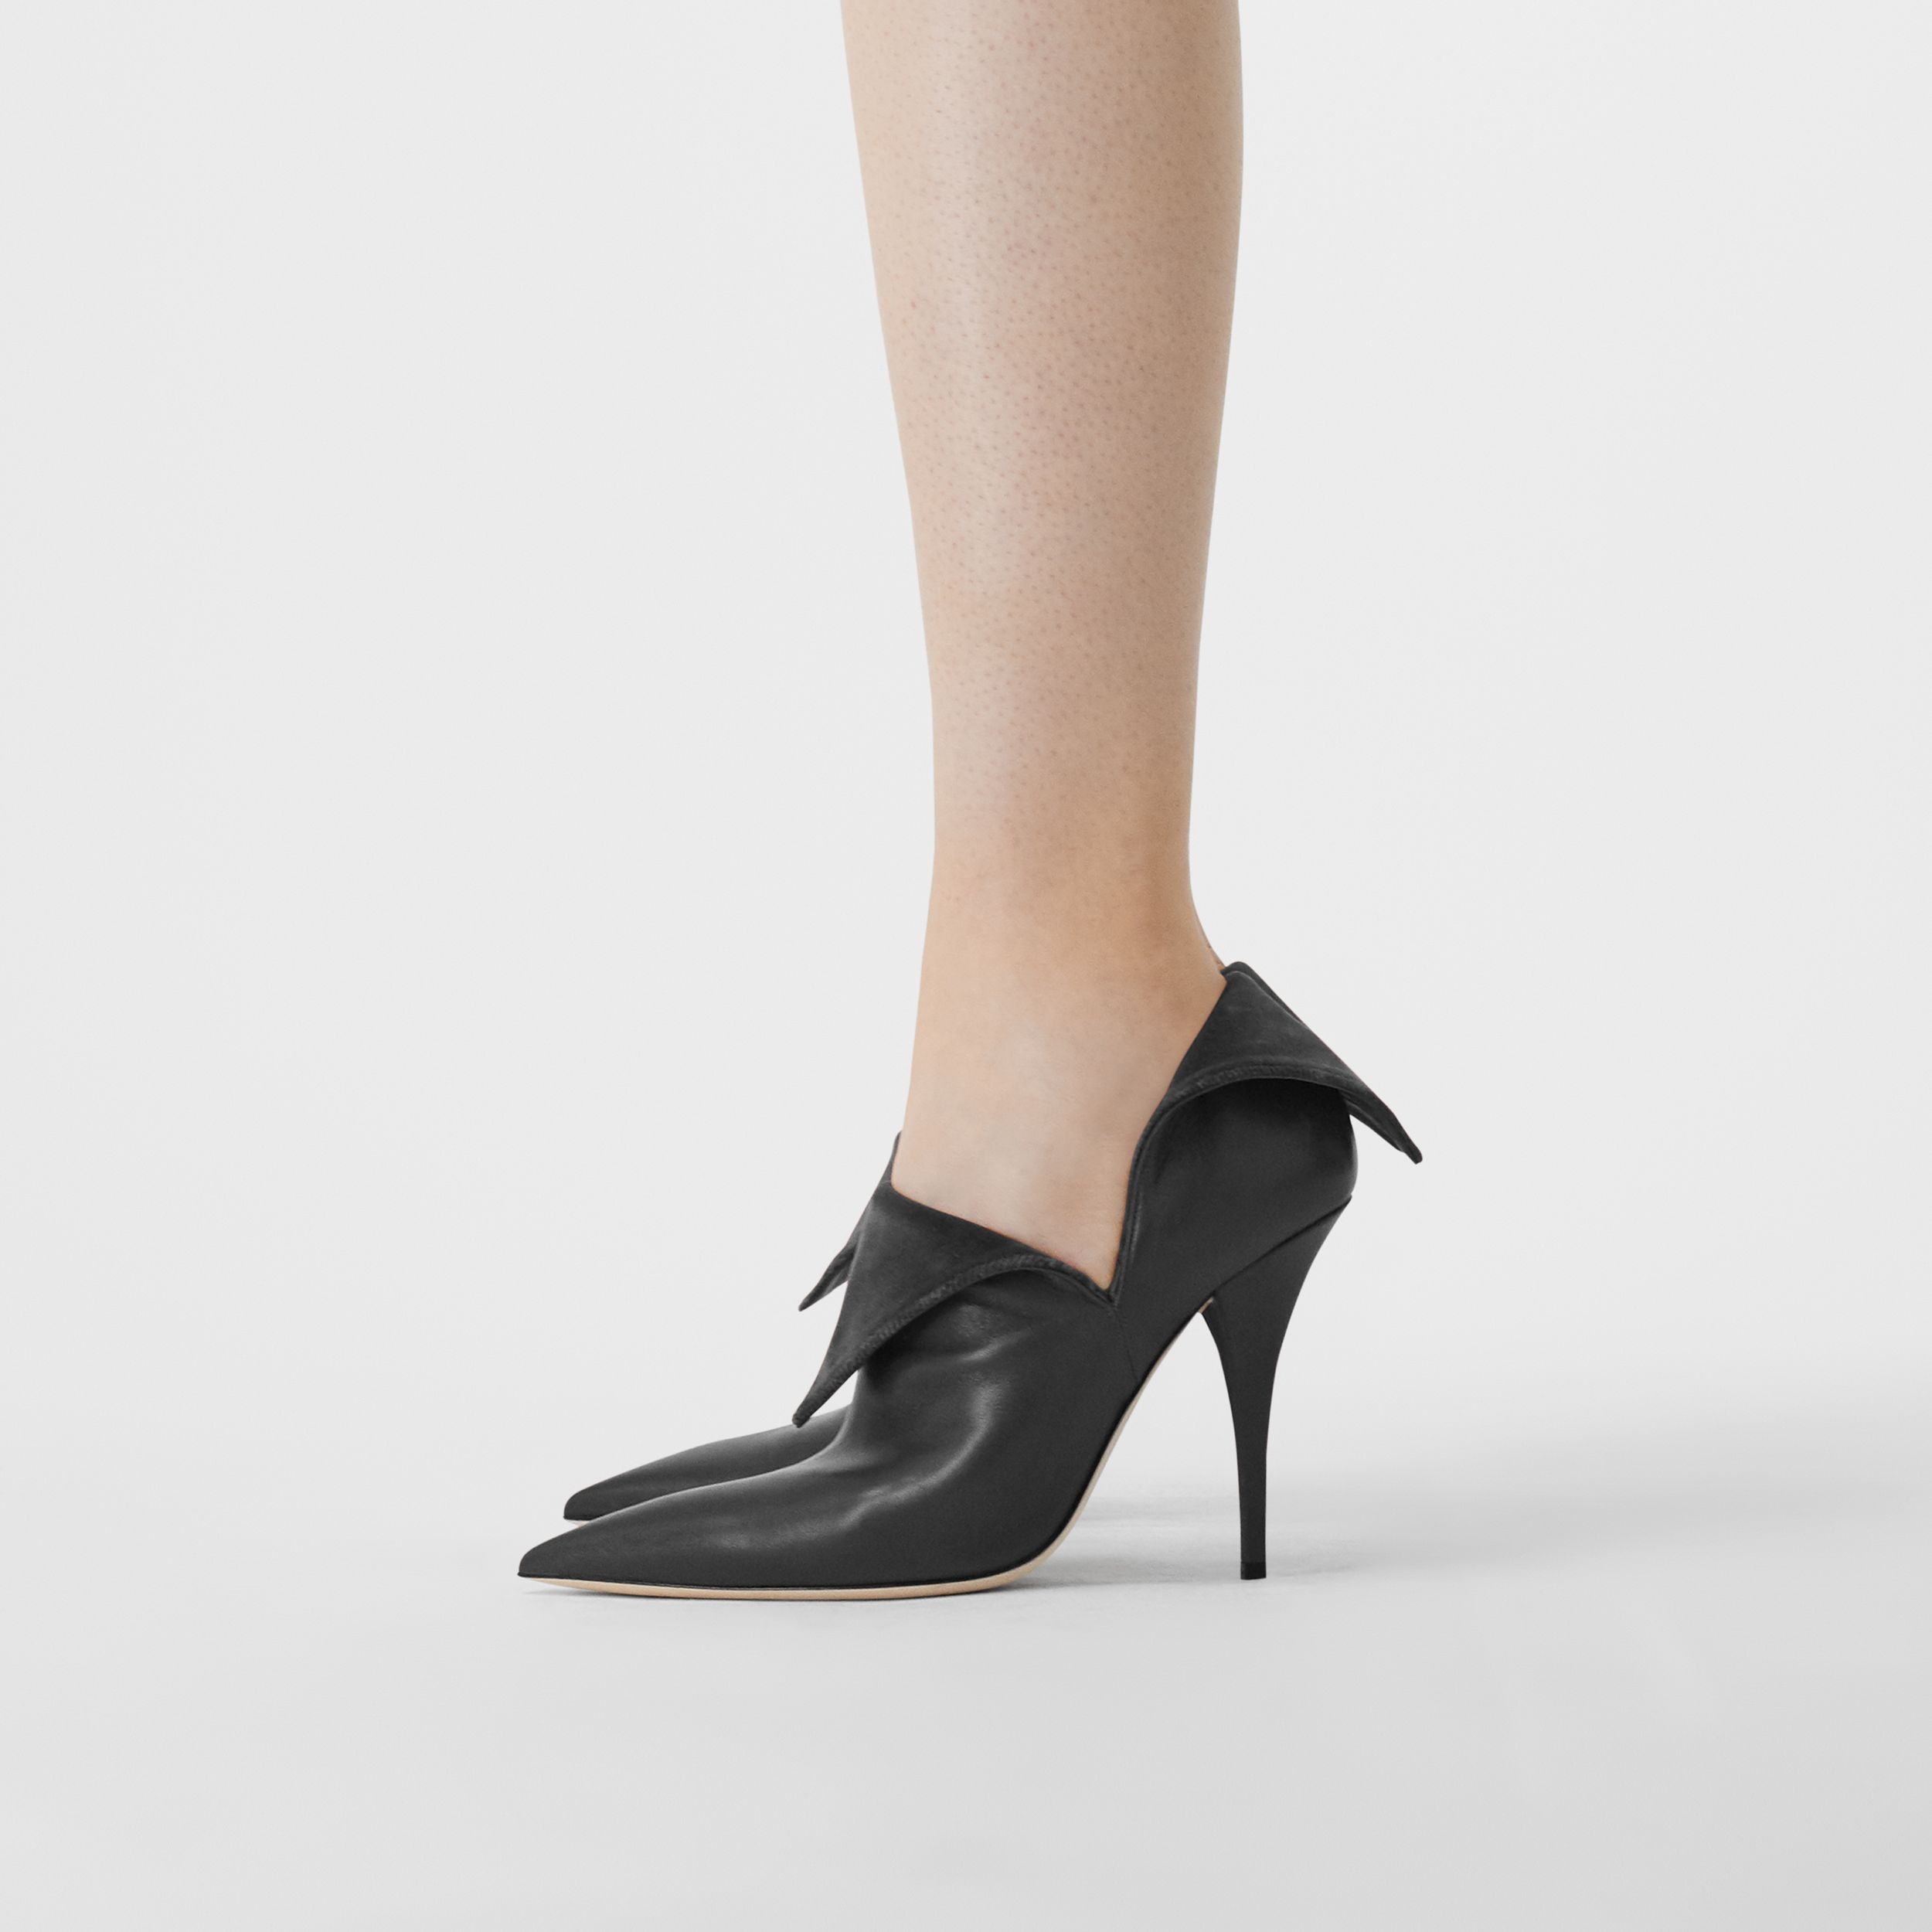 Velvet and Lambskin Foldover Point-toe Pumps in Black - Women | Burberry - 4